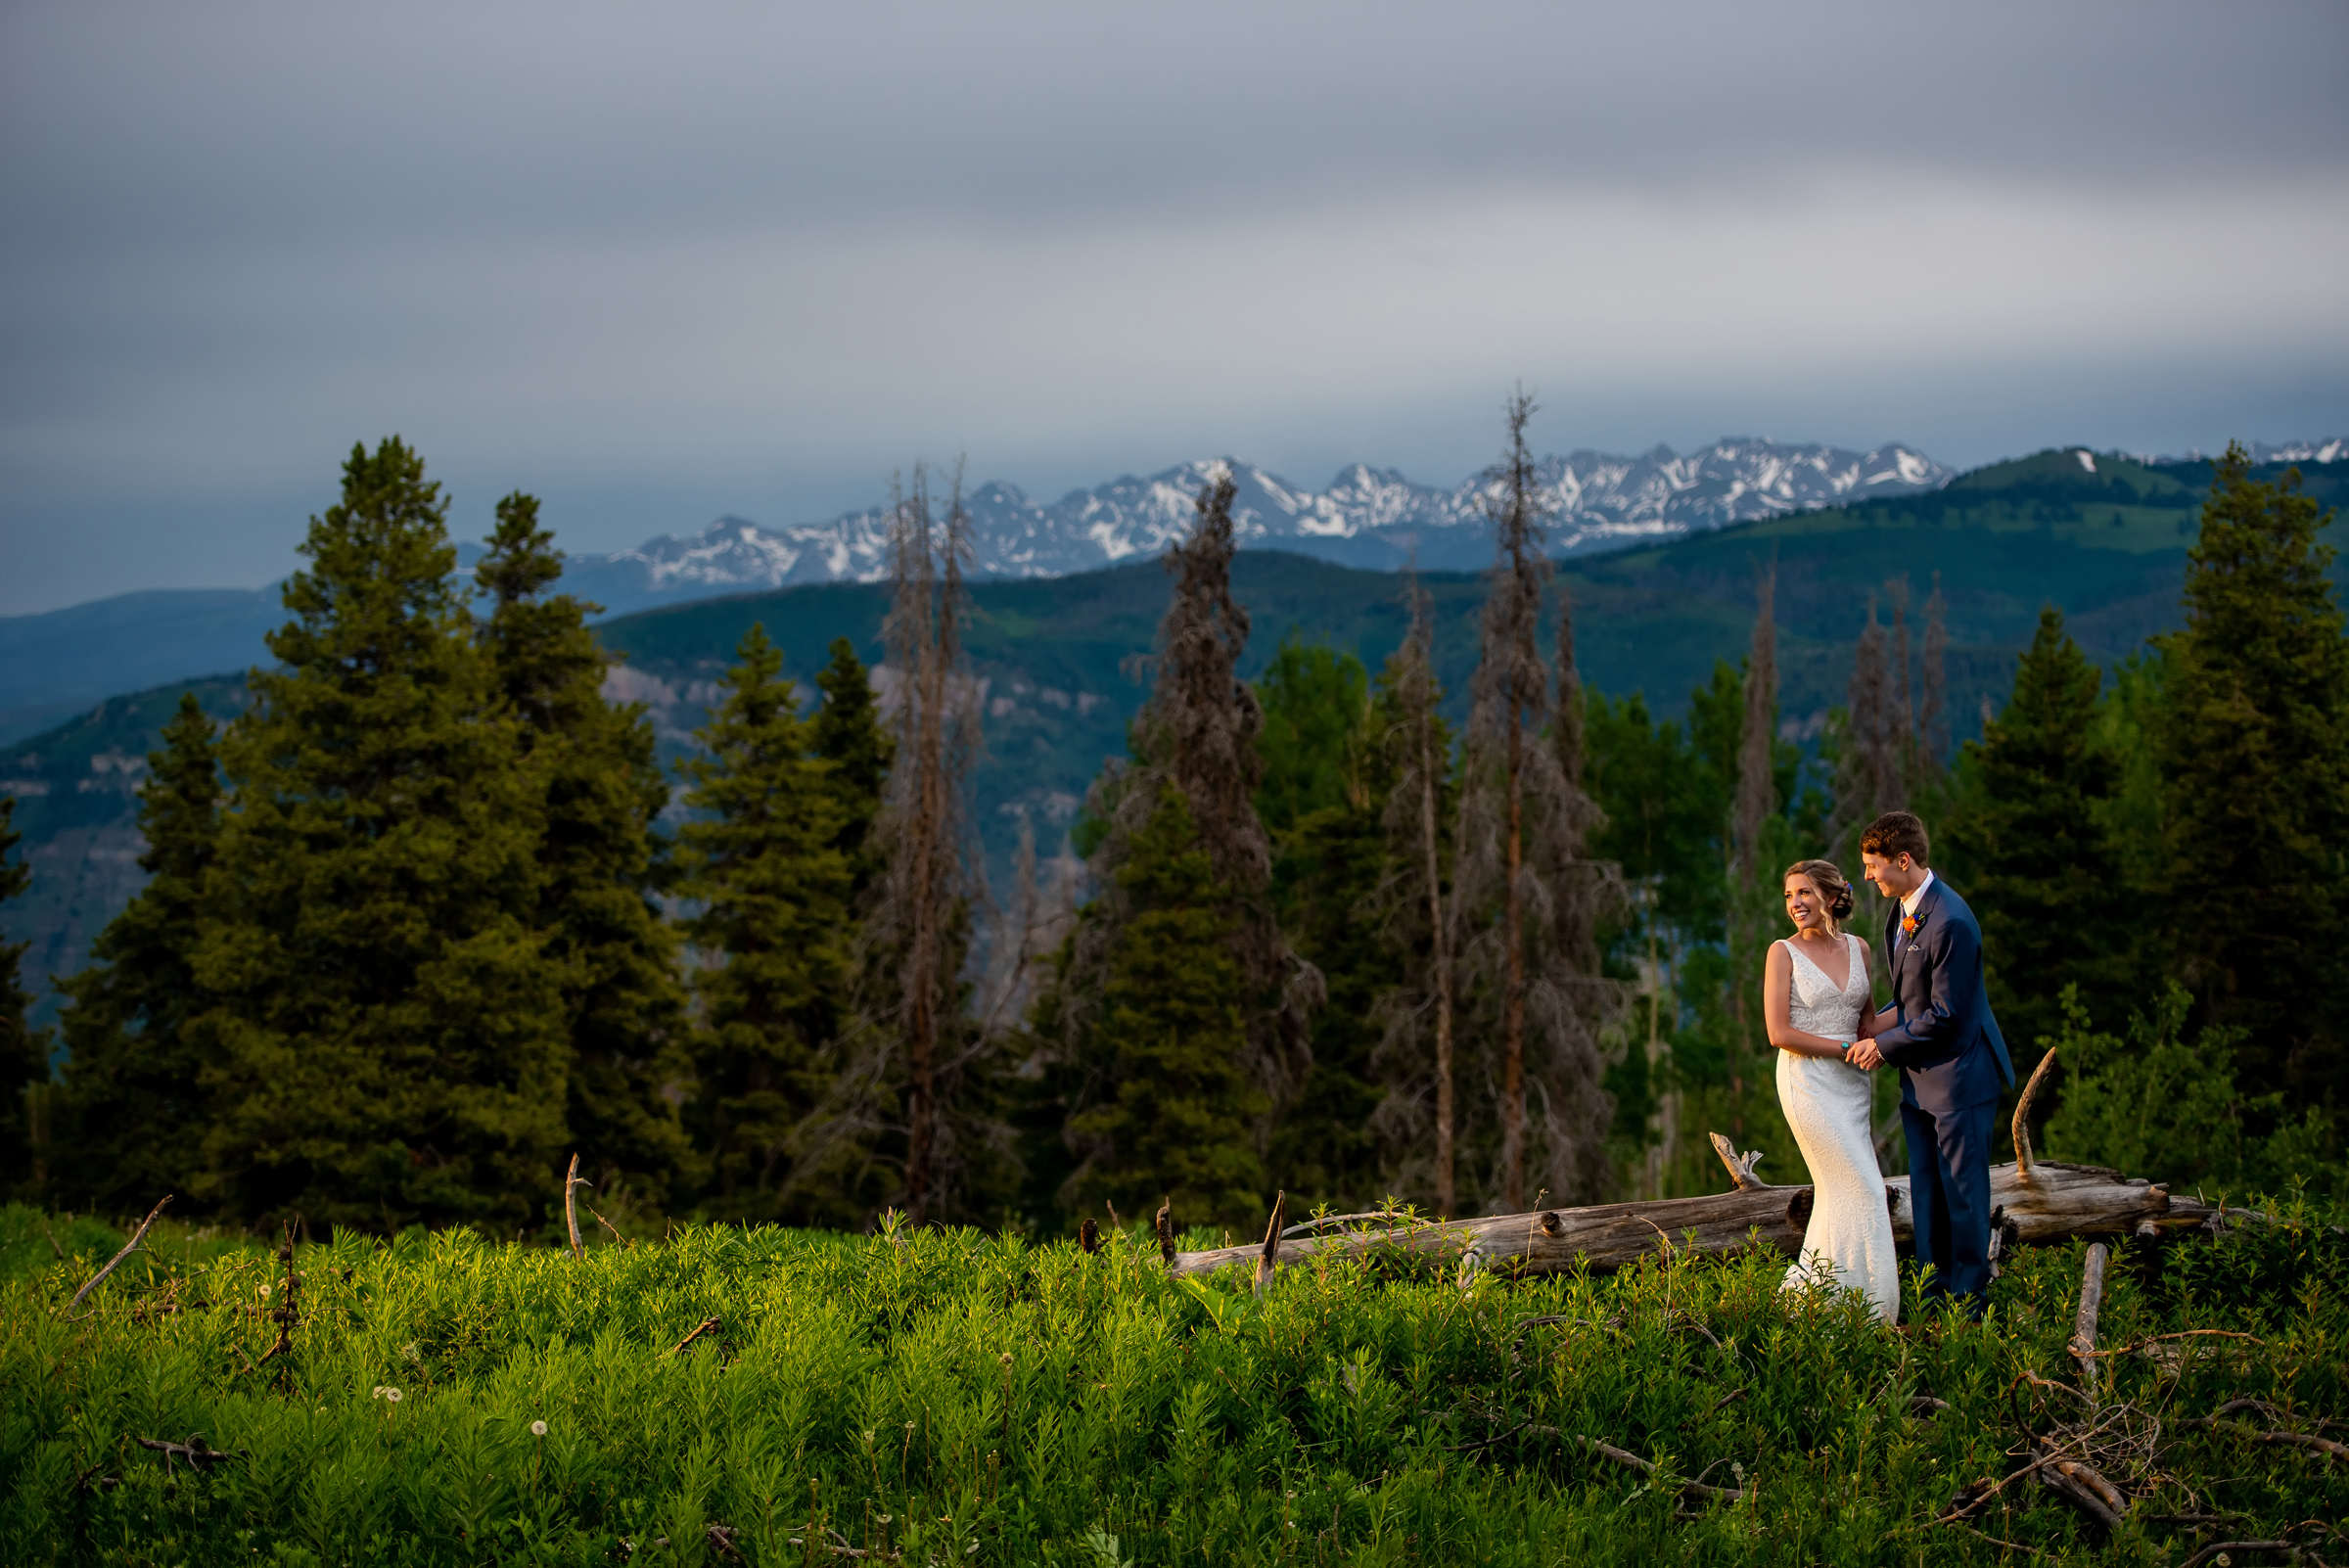 Couple against mountain backdrop - photo by Morgan Lynn Photography